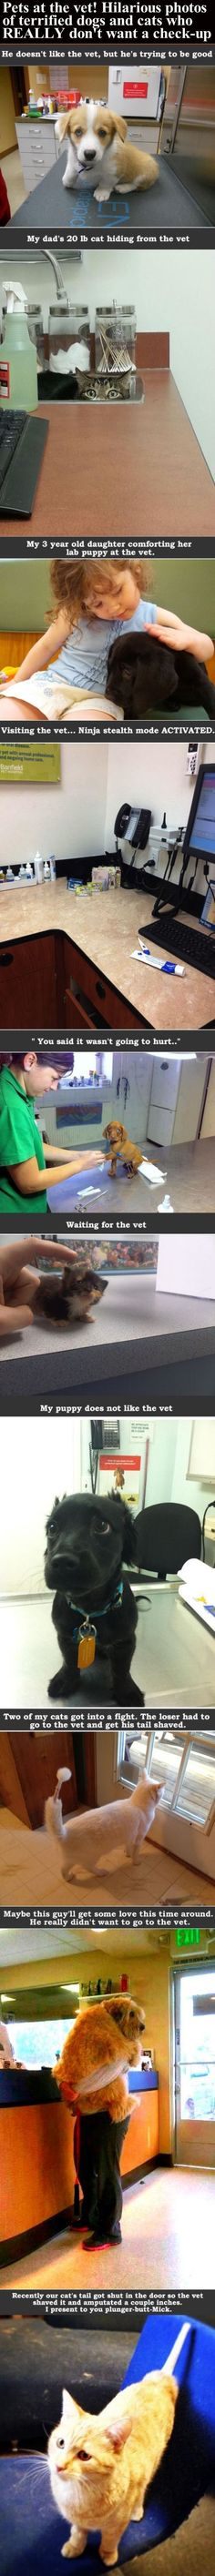 Pets At The Vet! Hilarious Photos Of Terrified Dogs And Cats Who Really Don't Want A Check-Up cute animals dogs cat cats adorable dog puppy animal pets kitten funny animals funny pets funny cats funny dogs